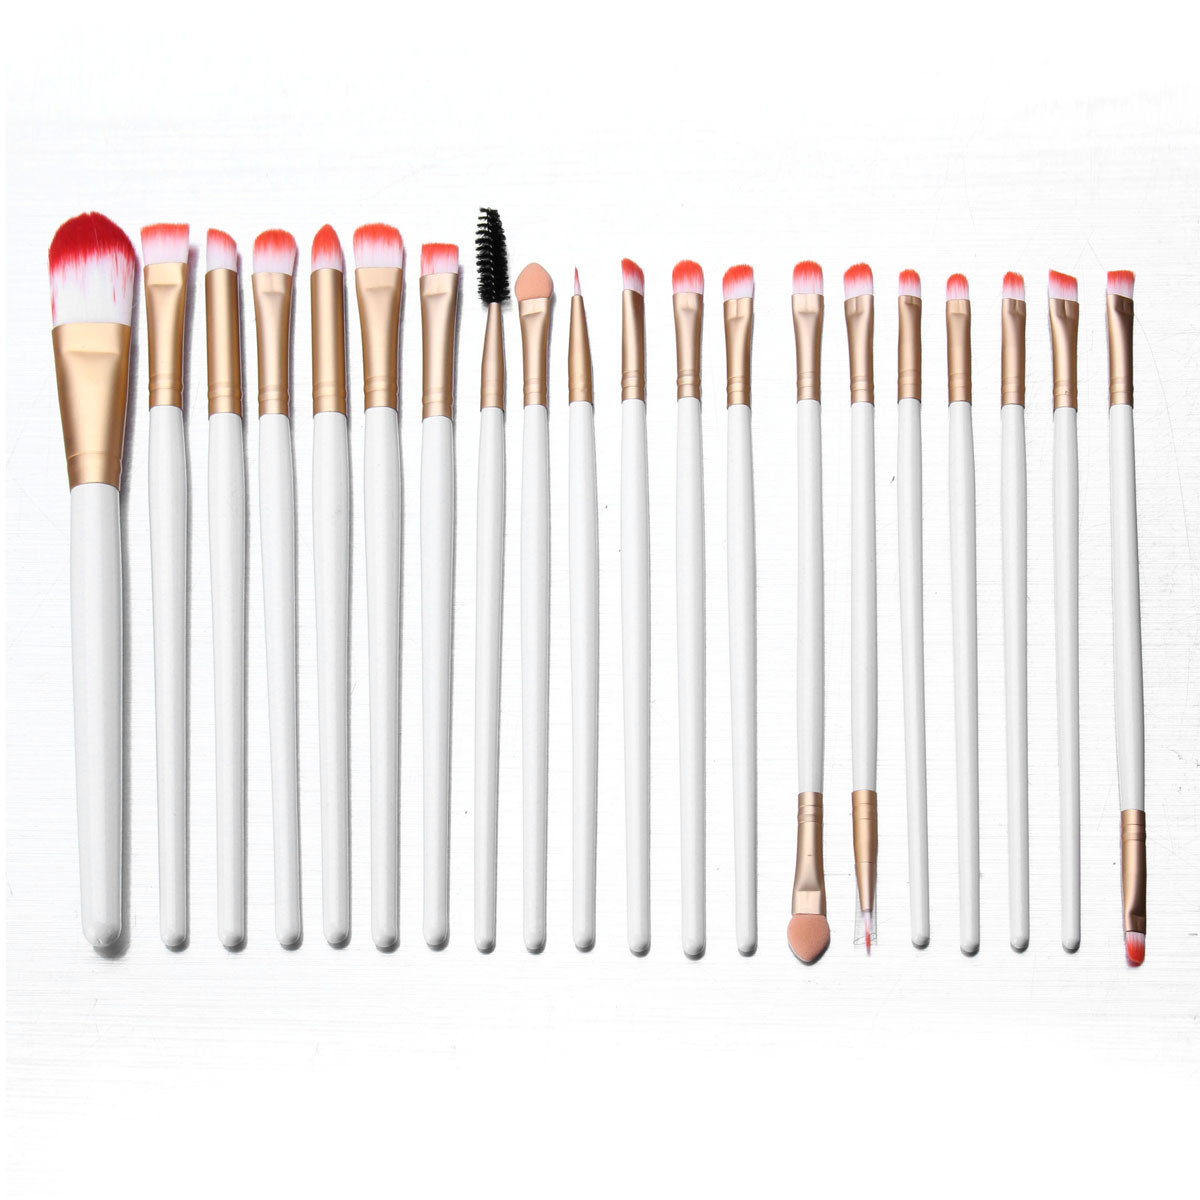 20 Pcs Professional Makeup Brushes Set Eye Shadow Eyeliner Lip Comestic Tool Kit